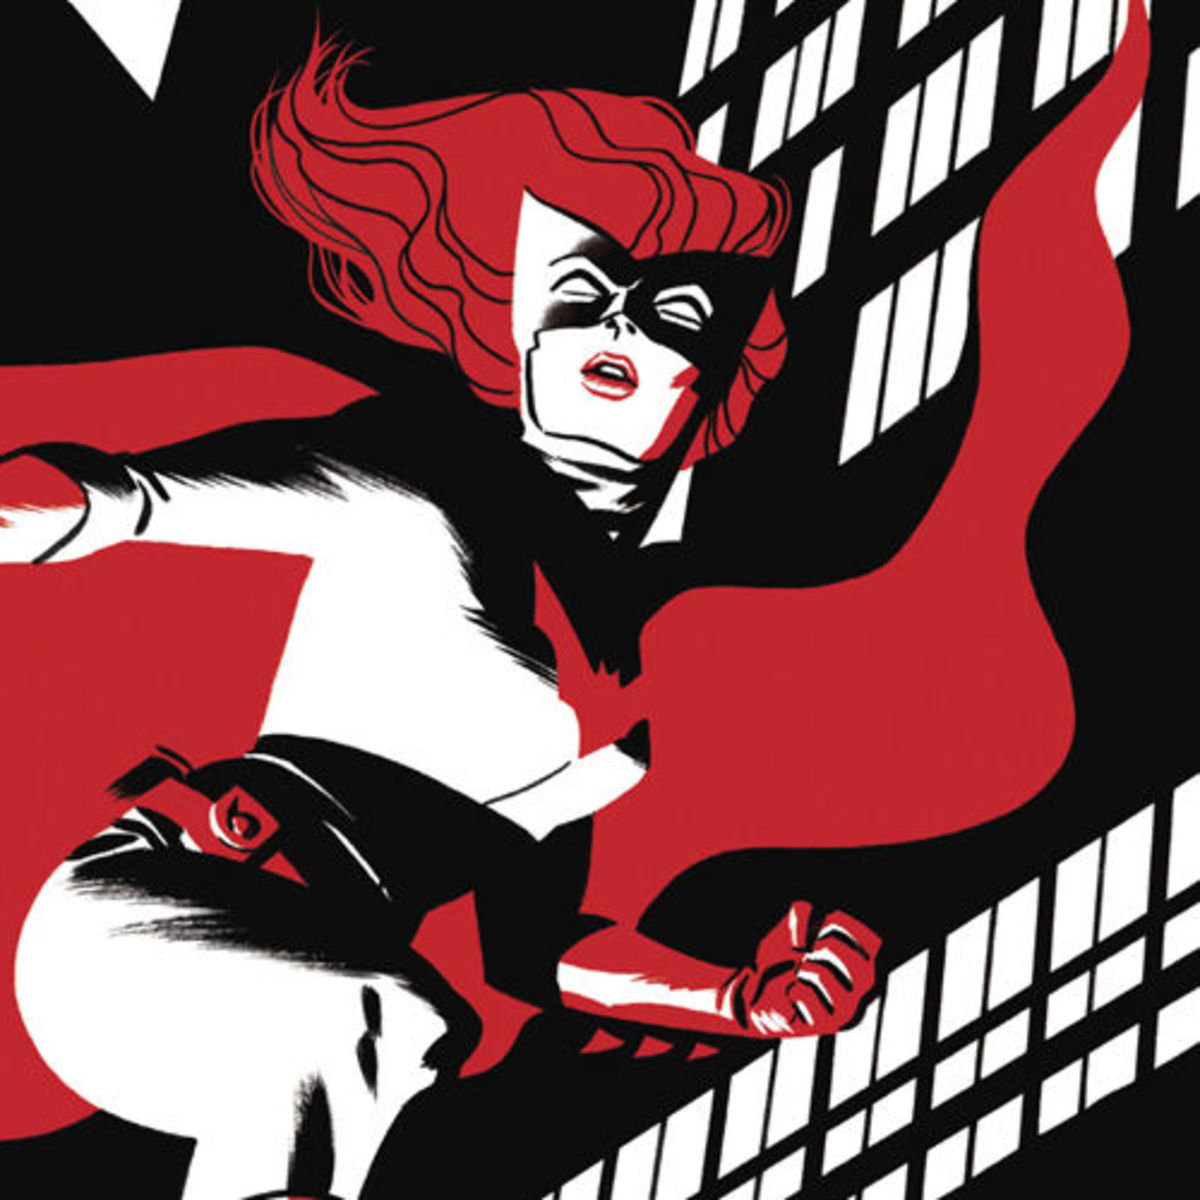 DC Comics Batwoman Series In Development At The CW